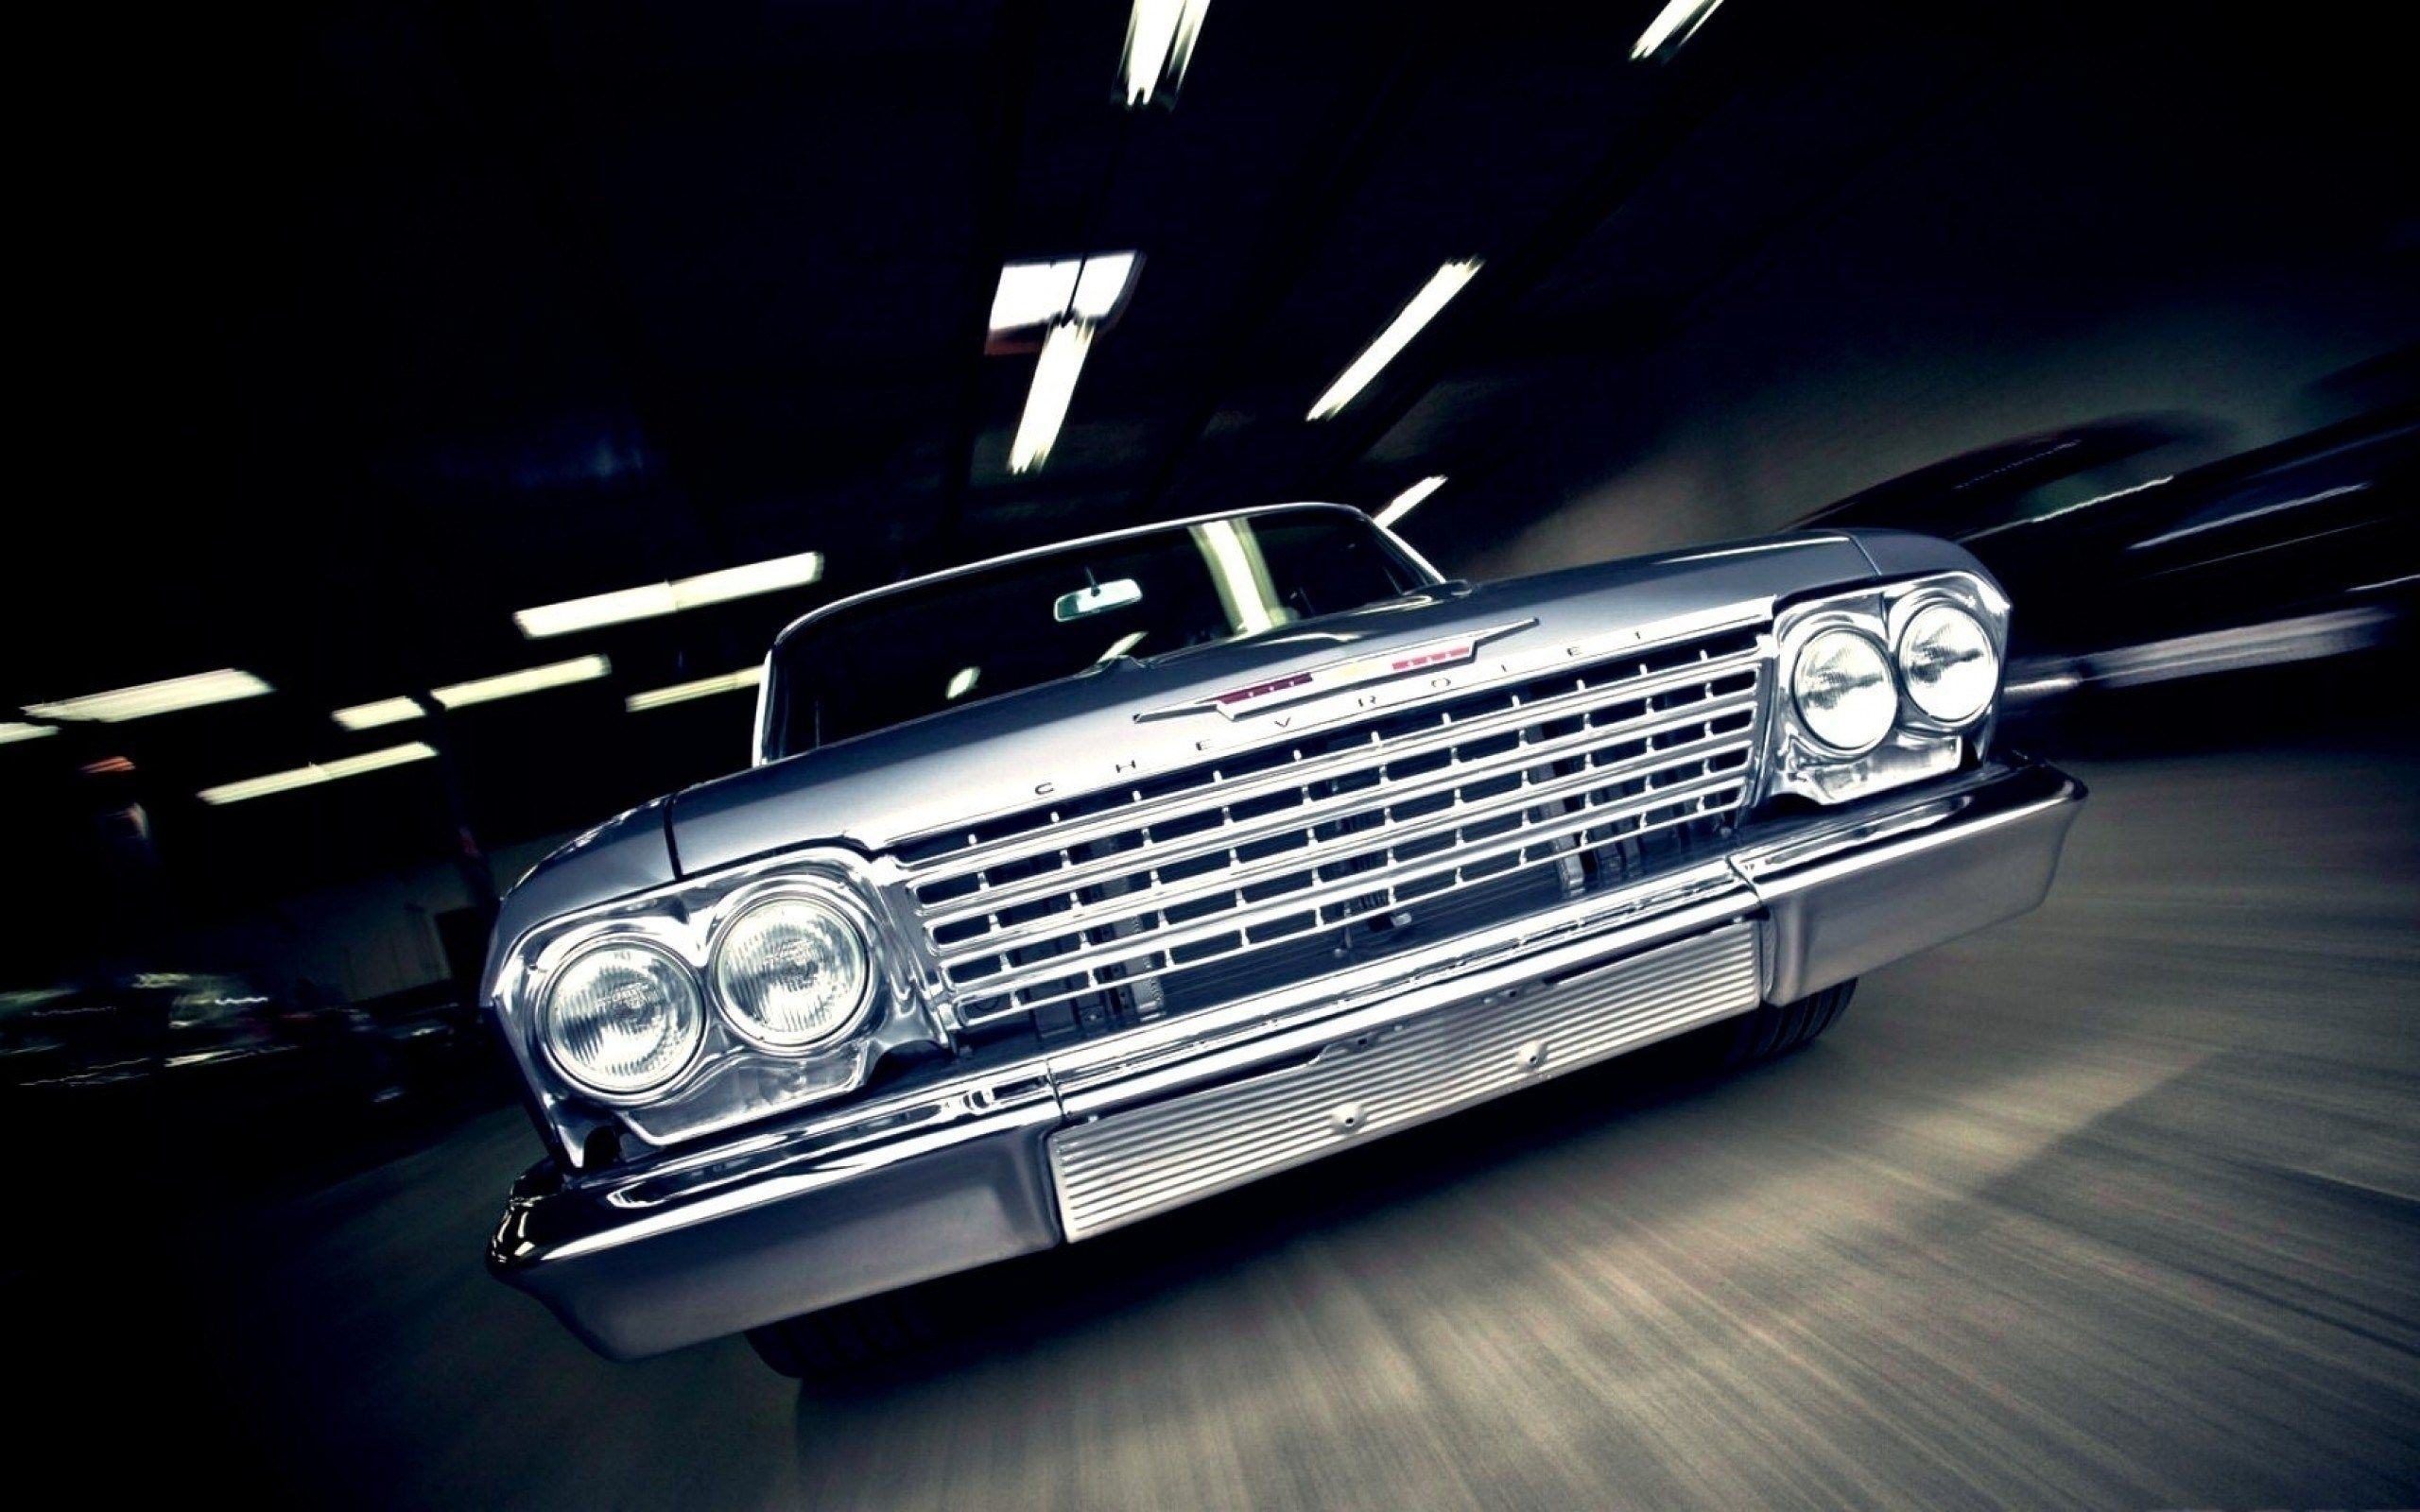 1956 chevrolet belair mjc classic cars pristine - Classic Chevrolet Wallpaper For Windows Ocq Cars Pinterest Chevrolet Car Wallpapers And Chevy